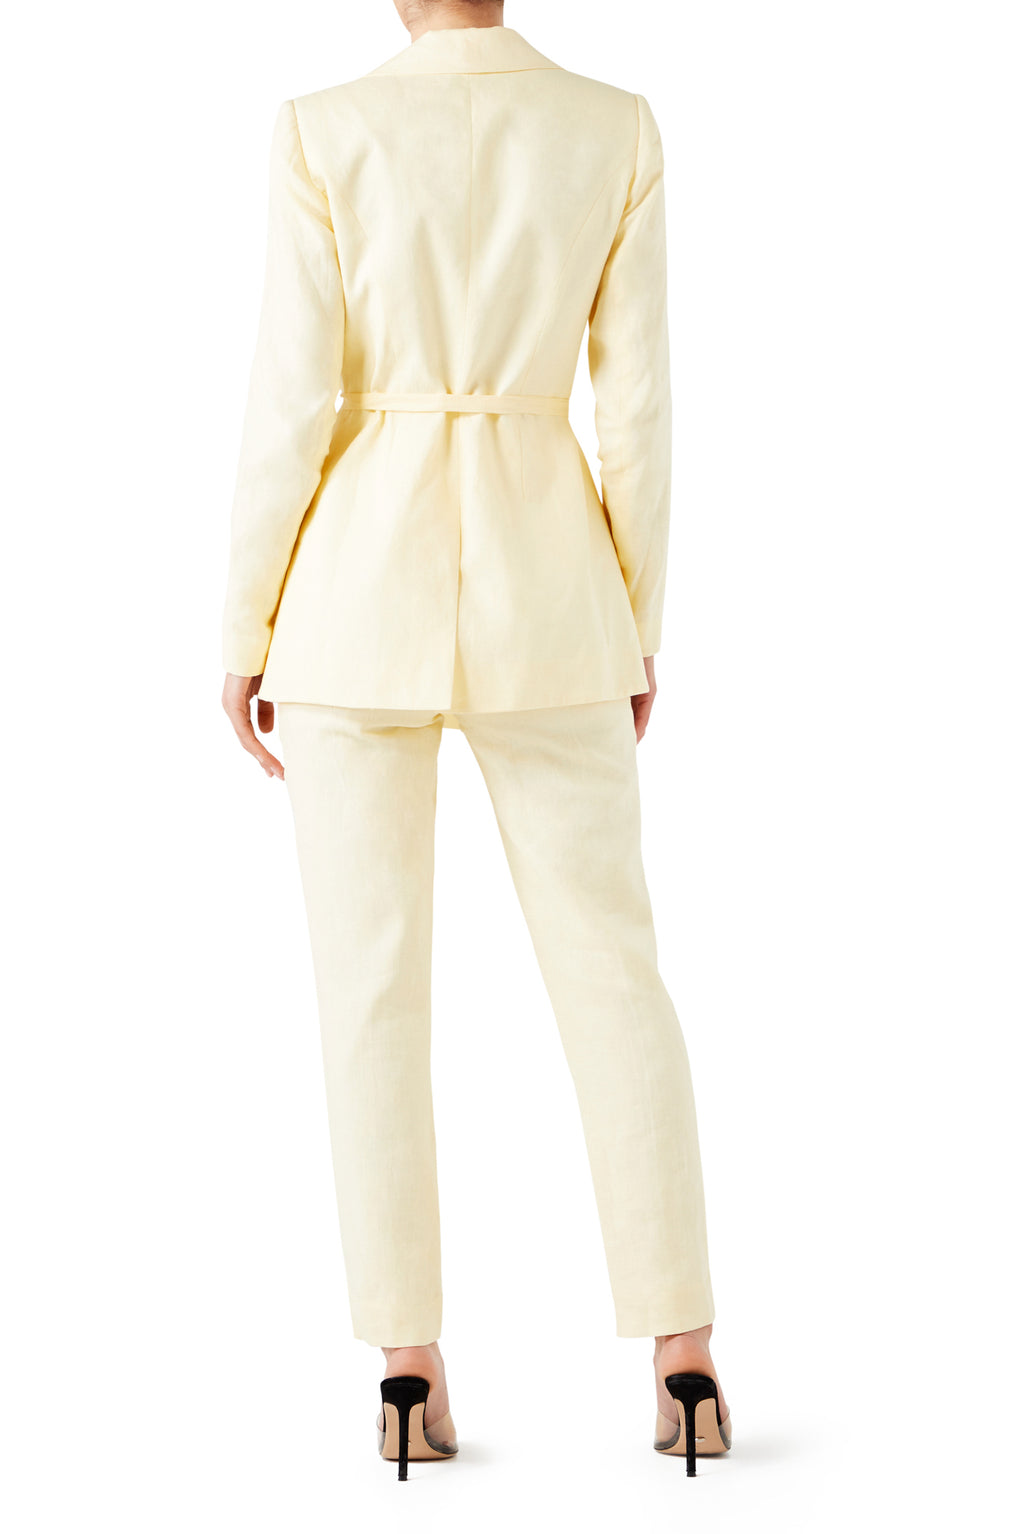 Harlem Asymmetric Jacket - Lemon